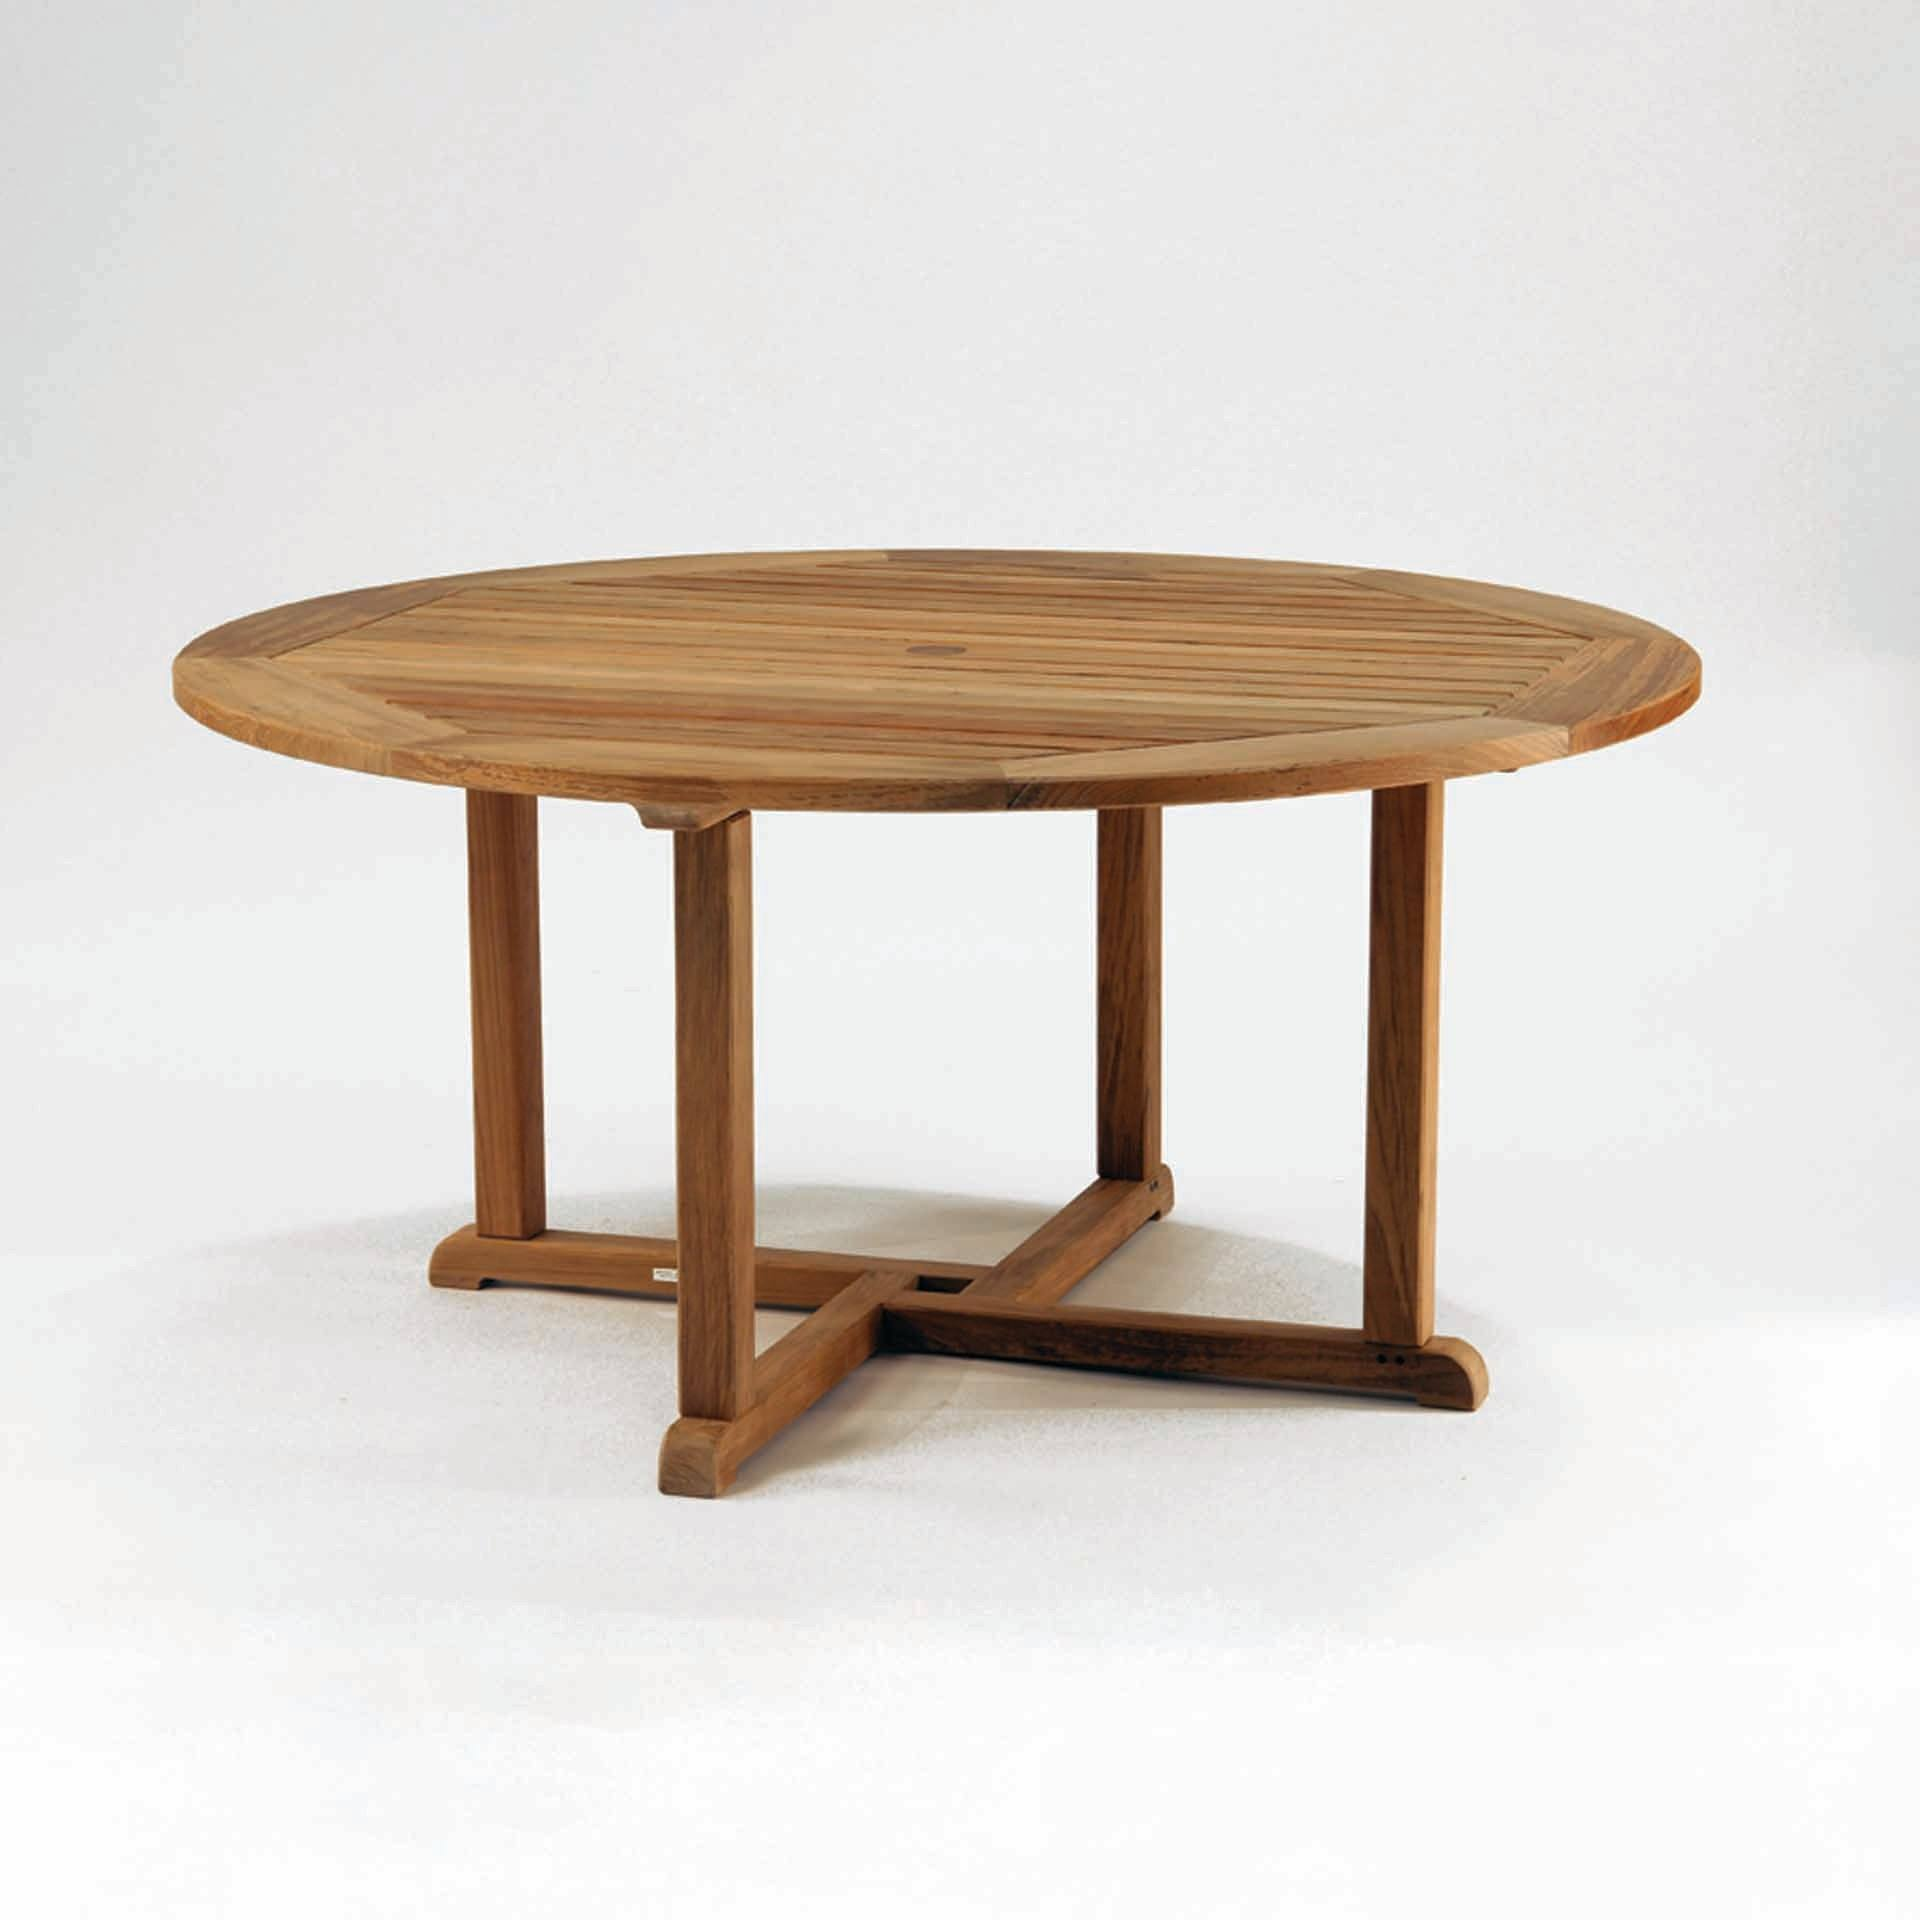 Kingsley Bate Essex 60 Quot Round Dining Table Leisure Living